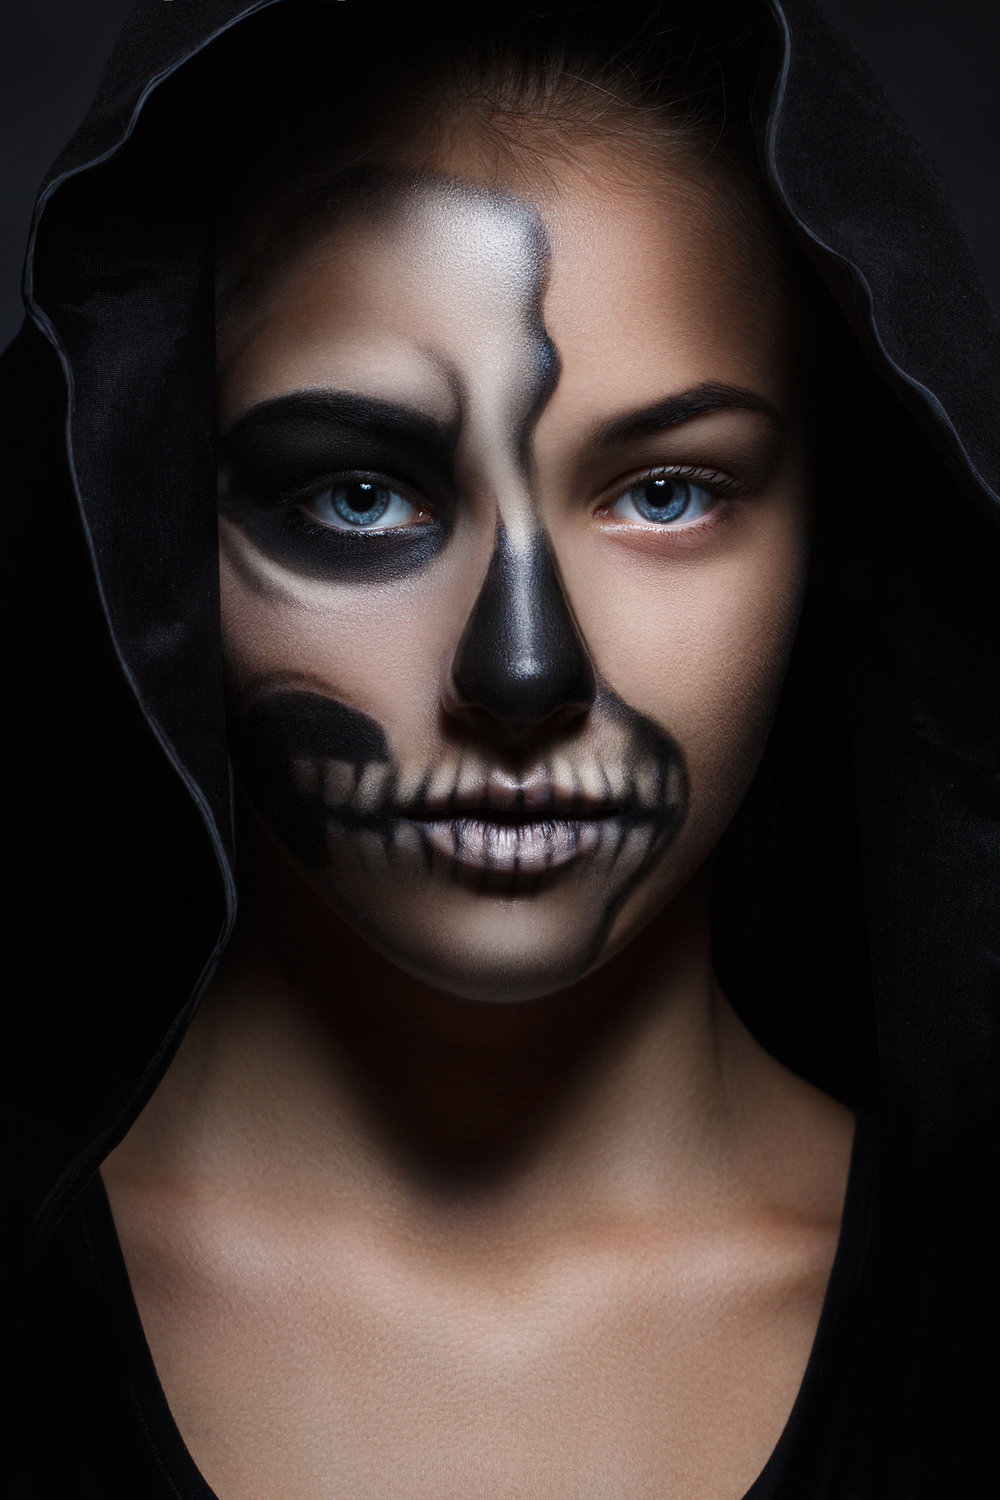 bigstock-Halloween-Portrait-Of-Young-Be-208226317.jpg